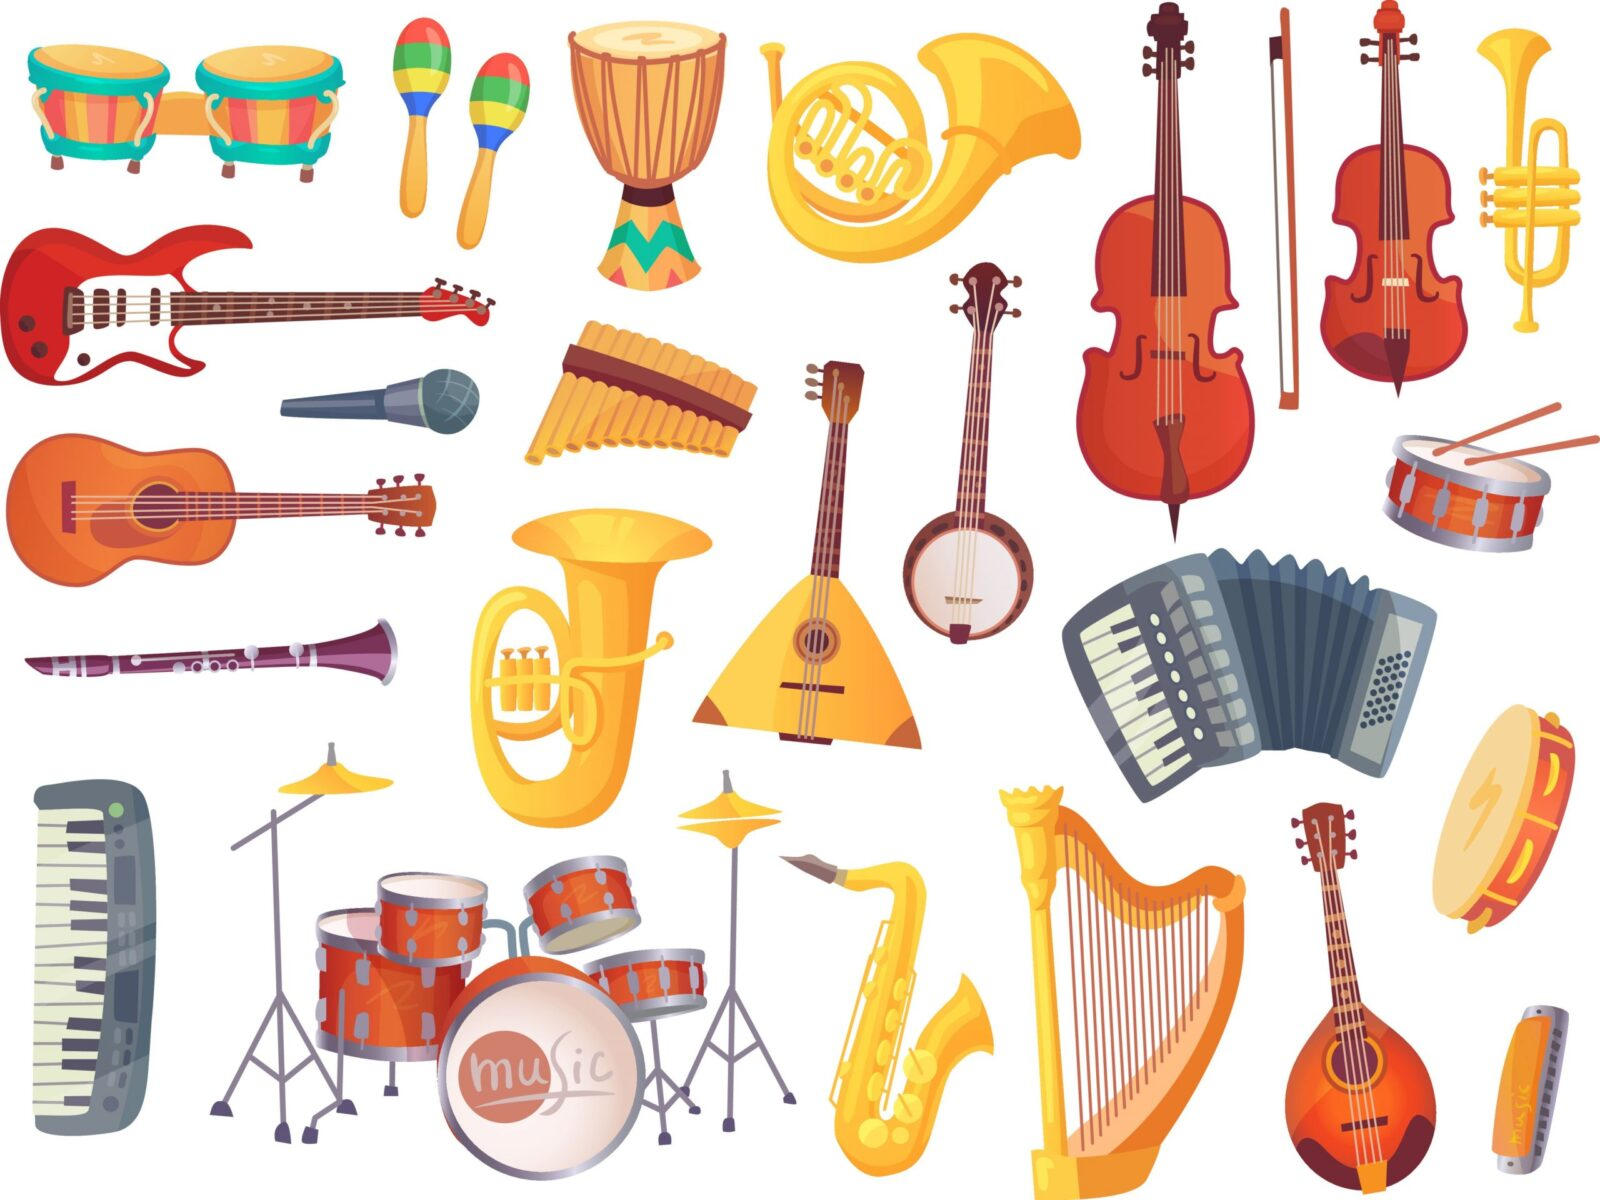 6 Benefits Of Learning To Play Musical Instruments